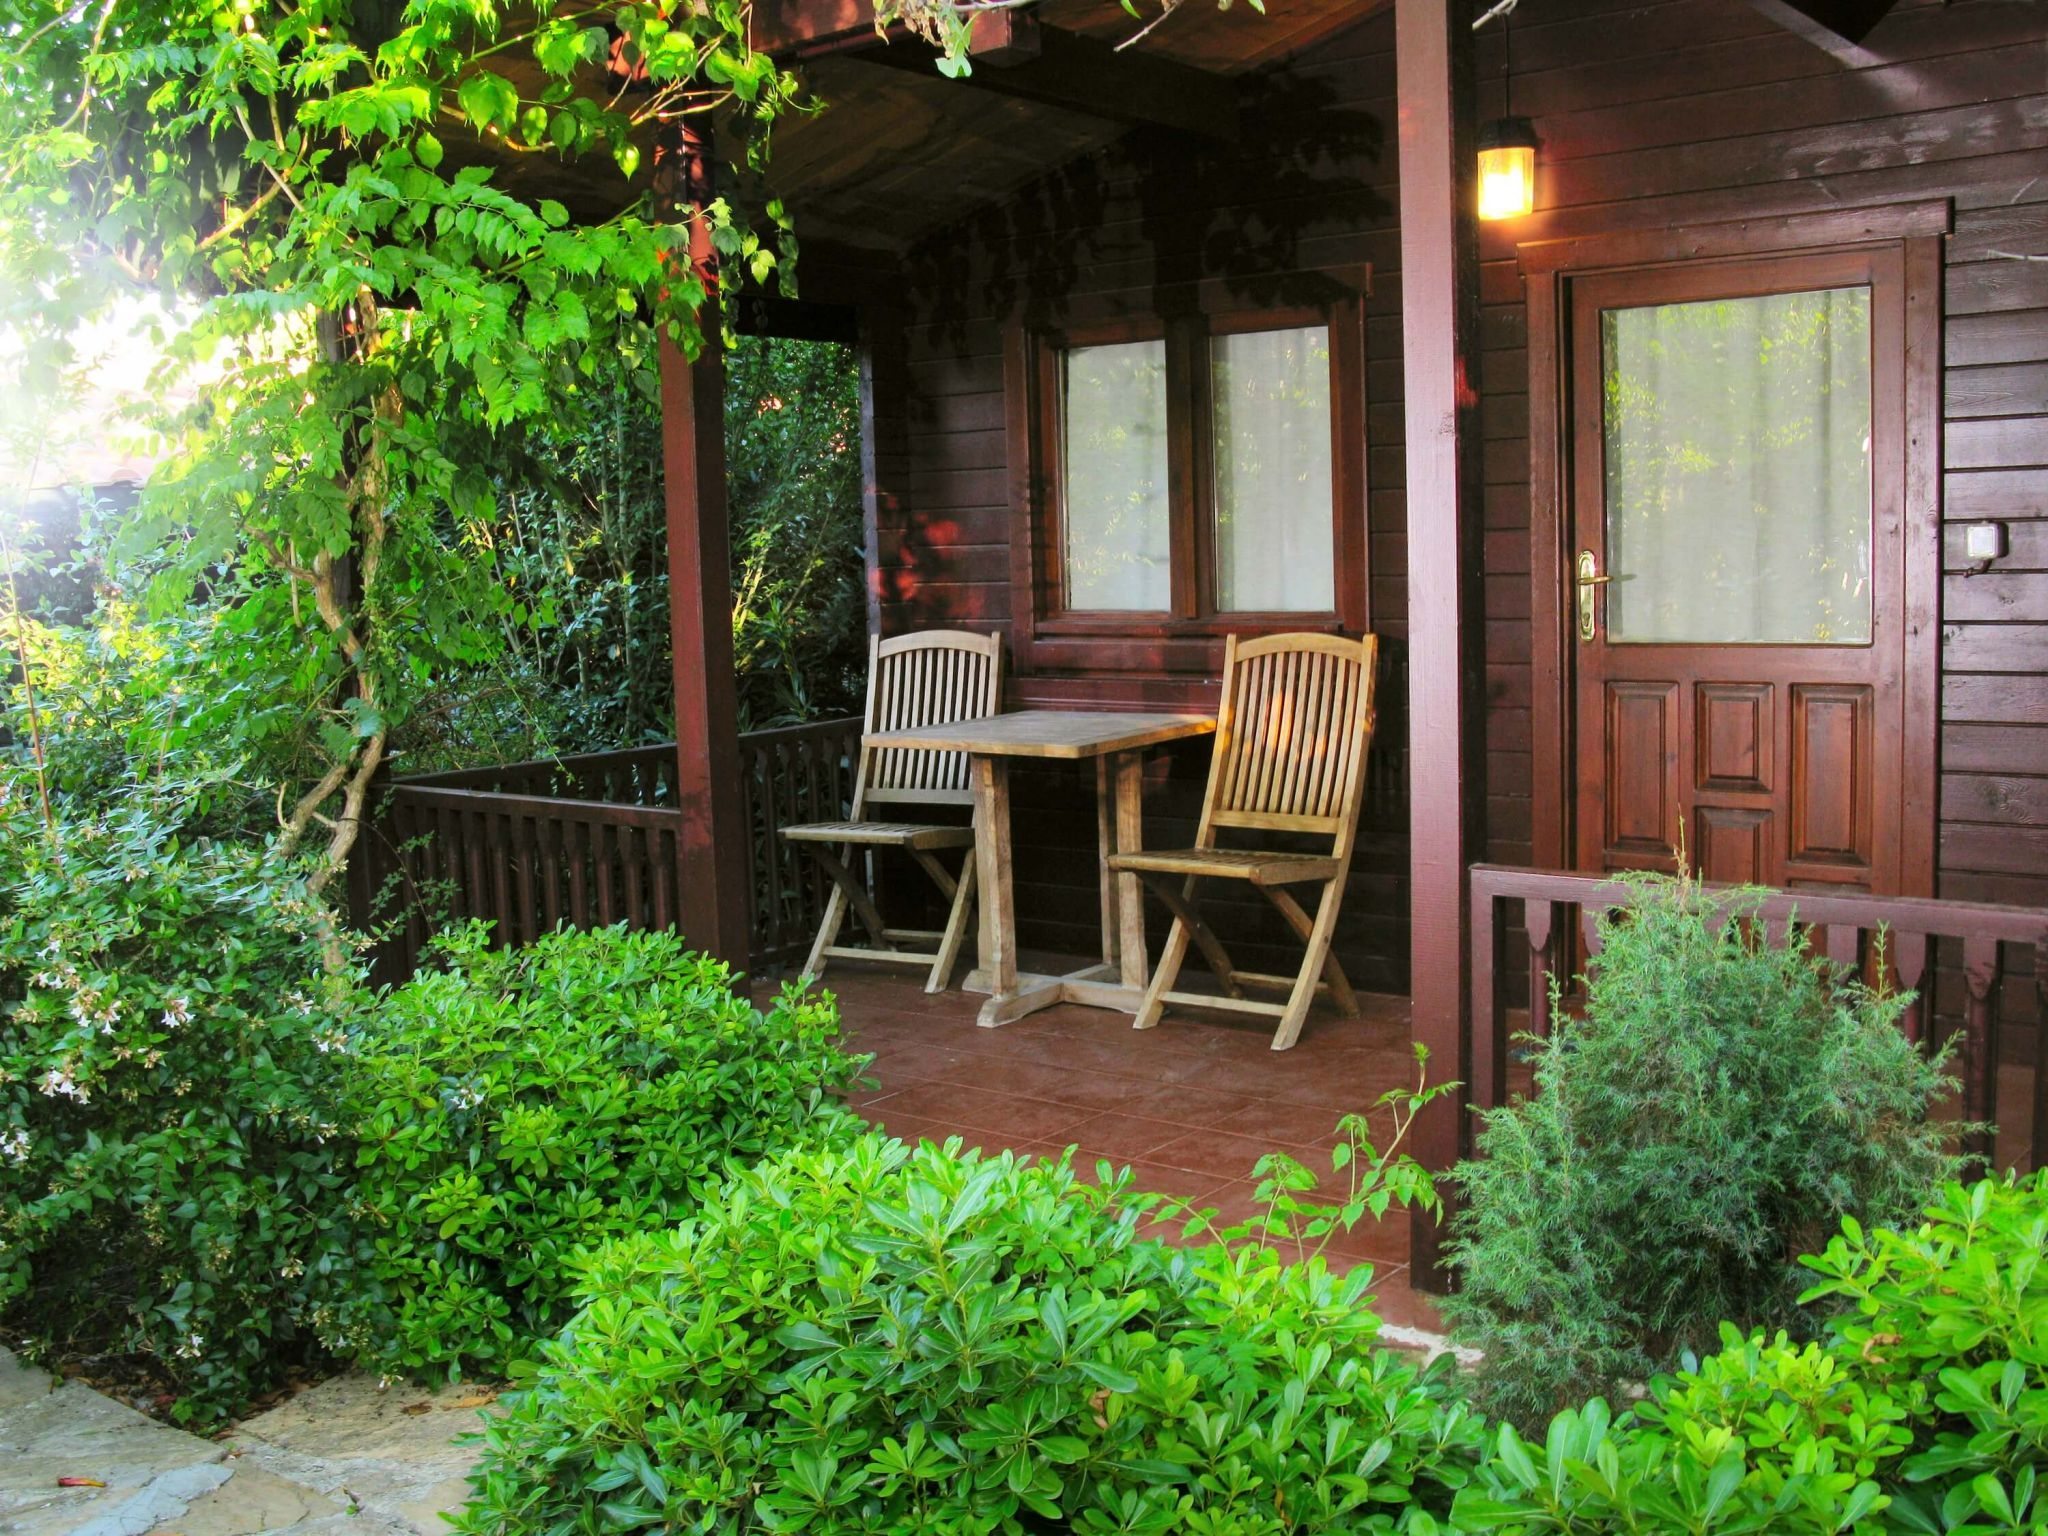 How can you use your summerhouse? - garden chairs outside summerhouse